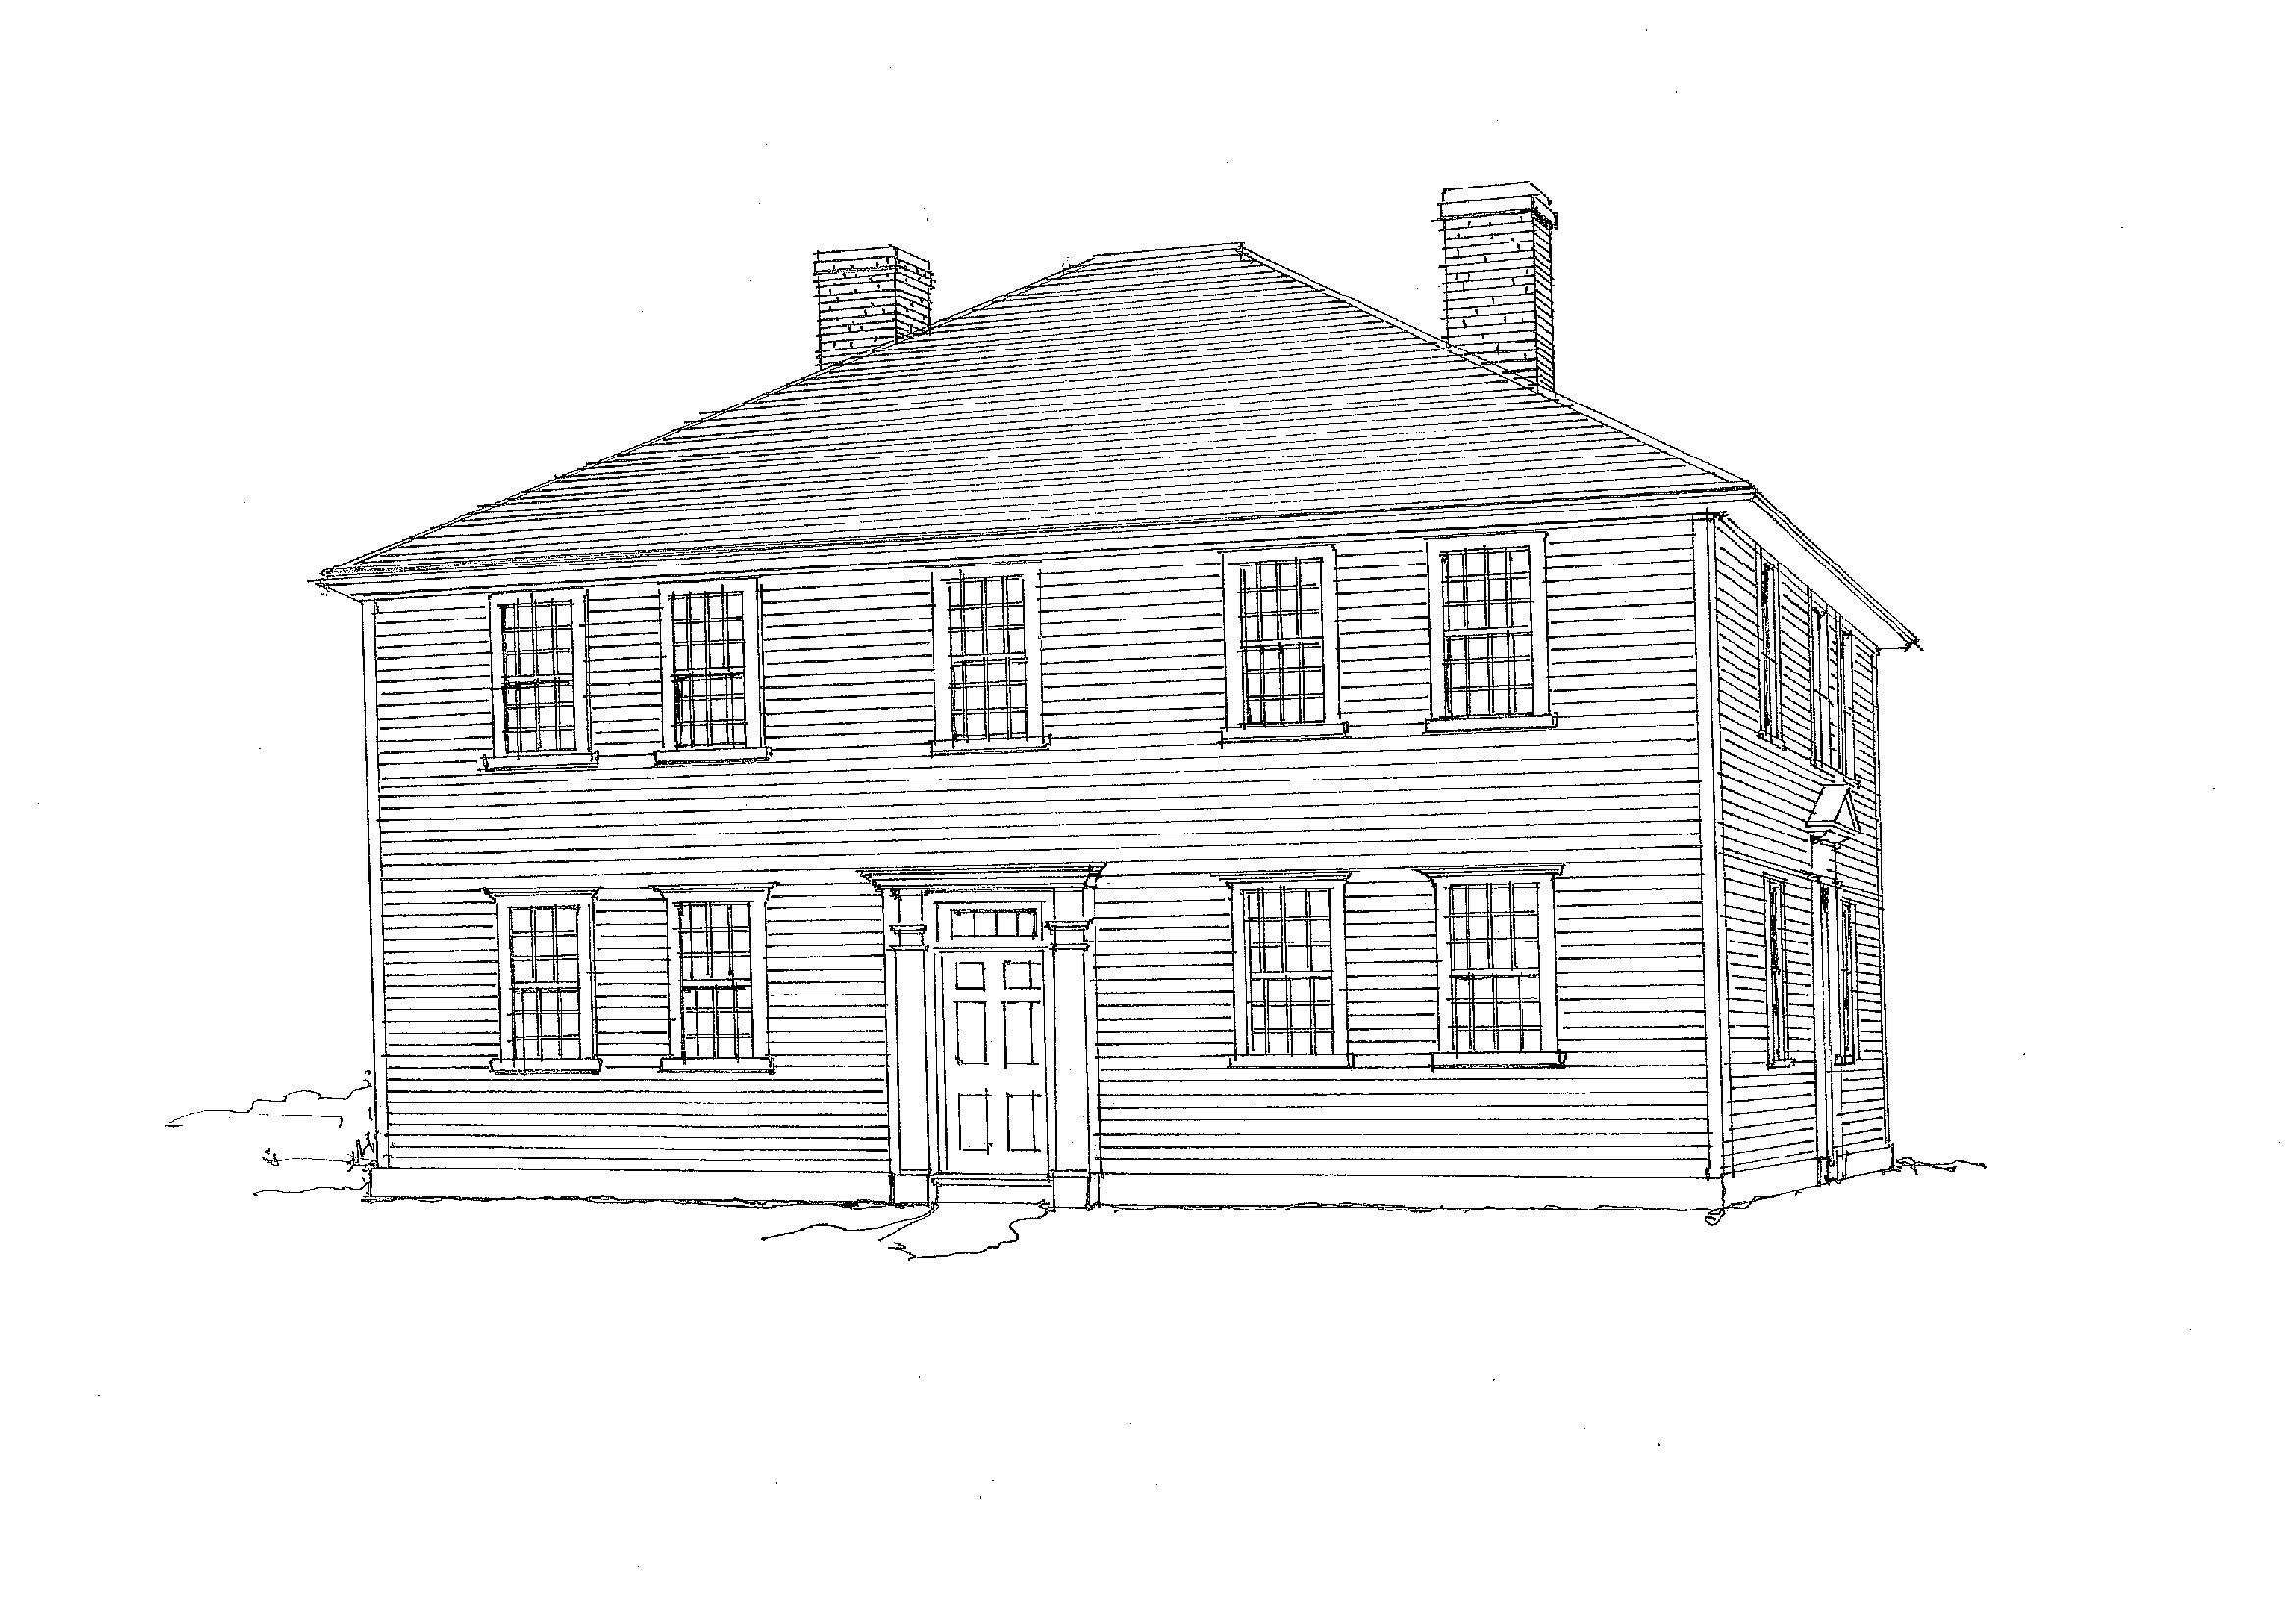 General Rufus Putnam House (ca. 1750)